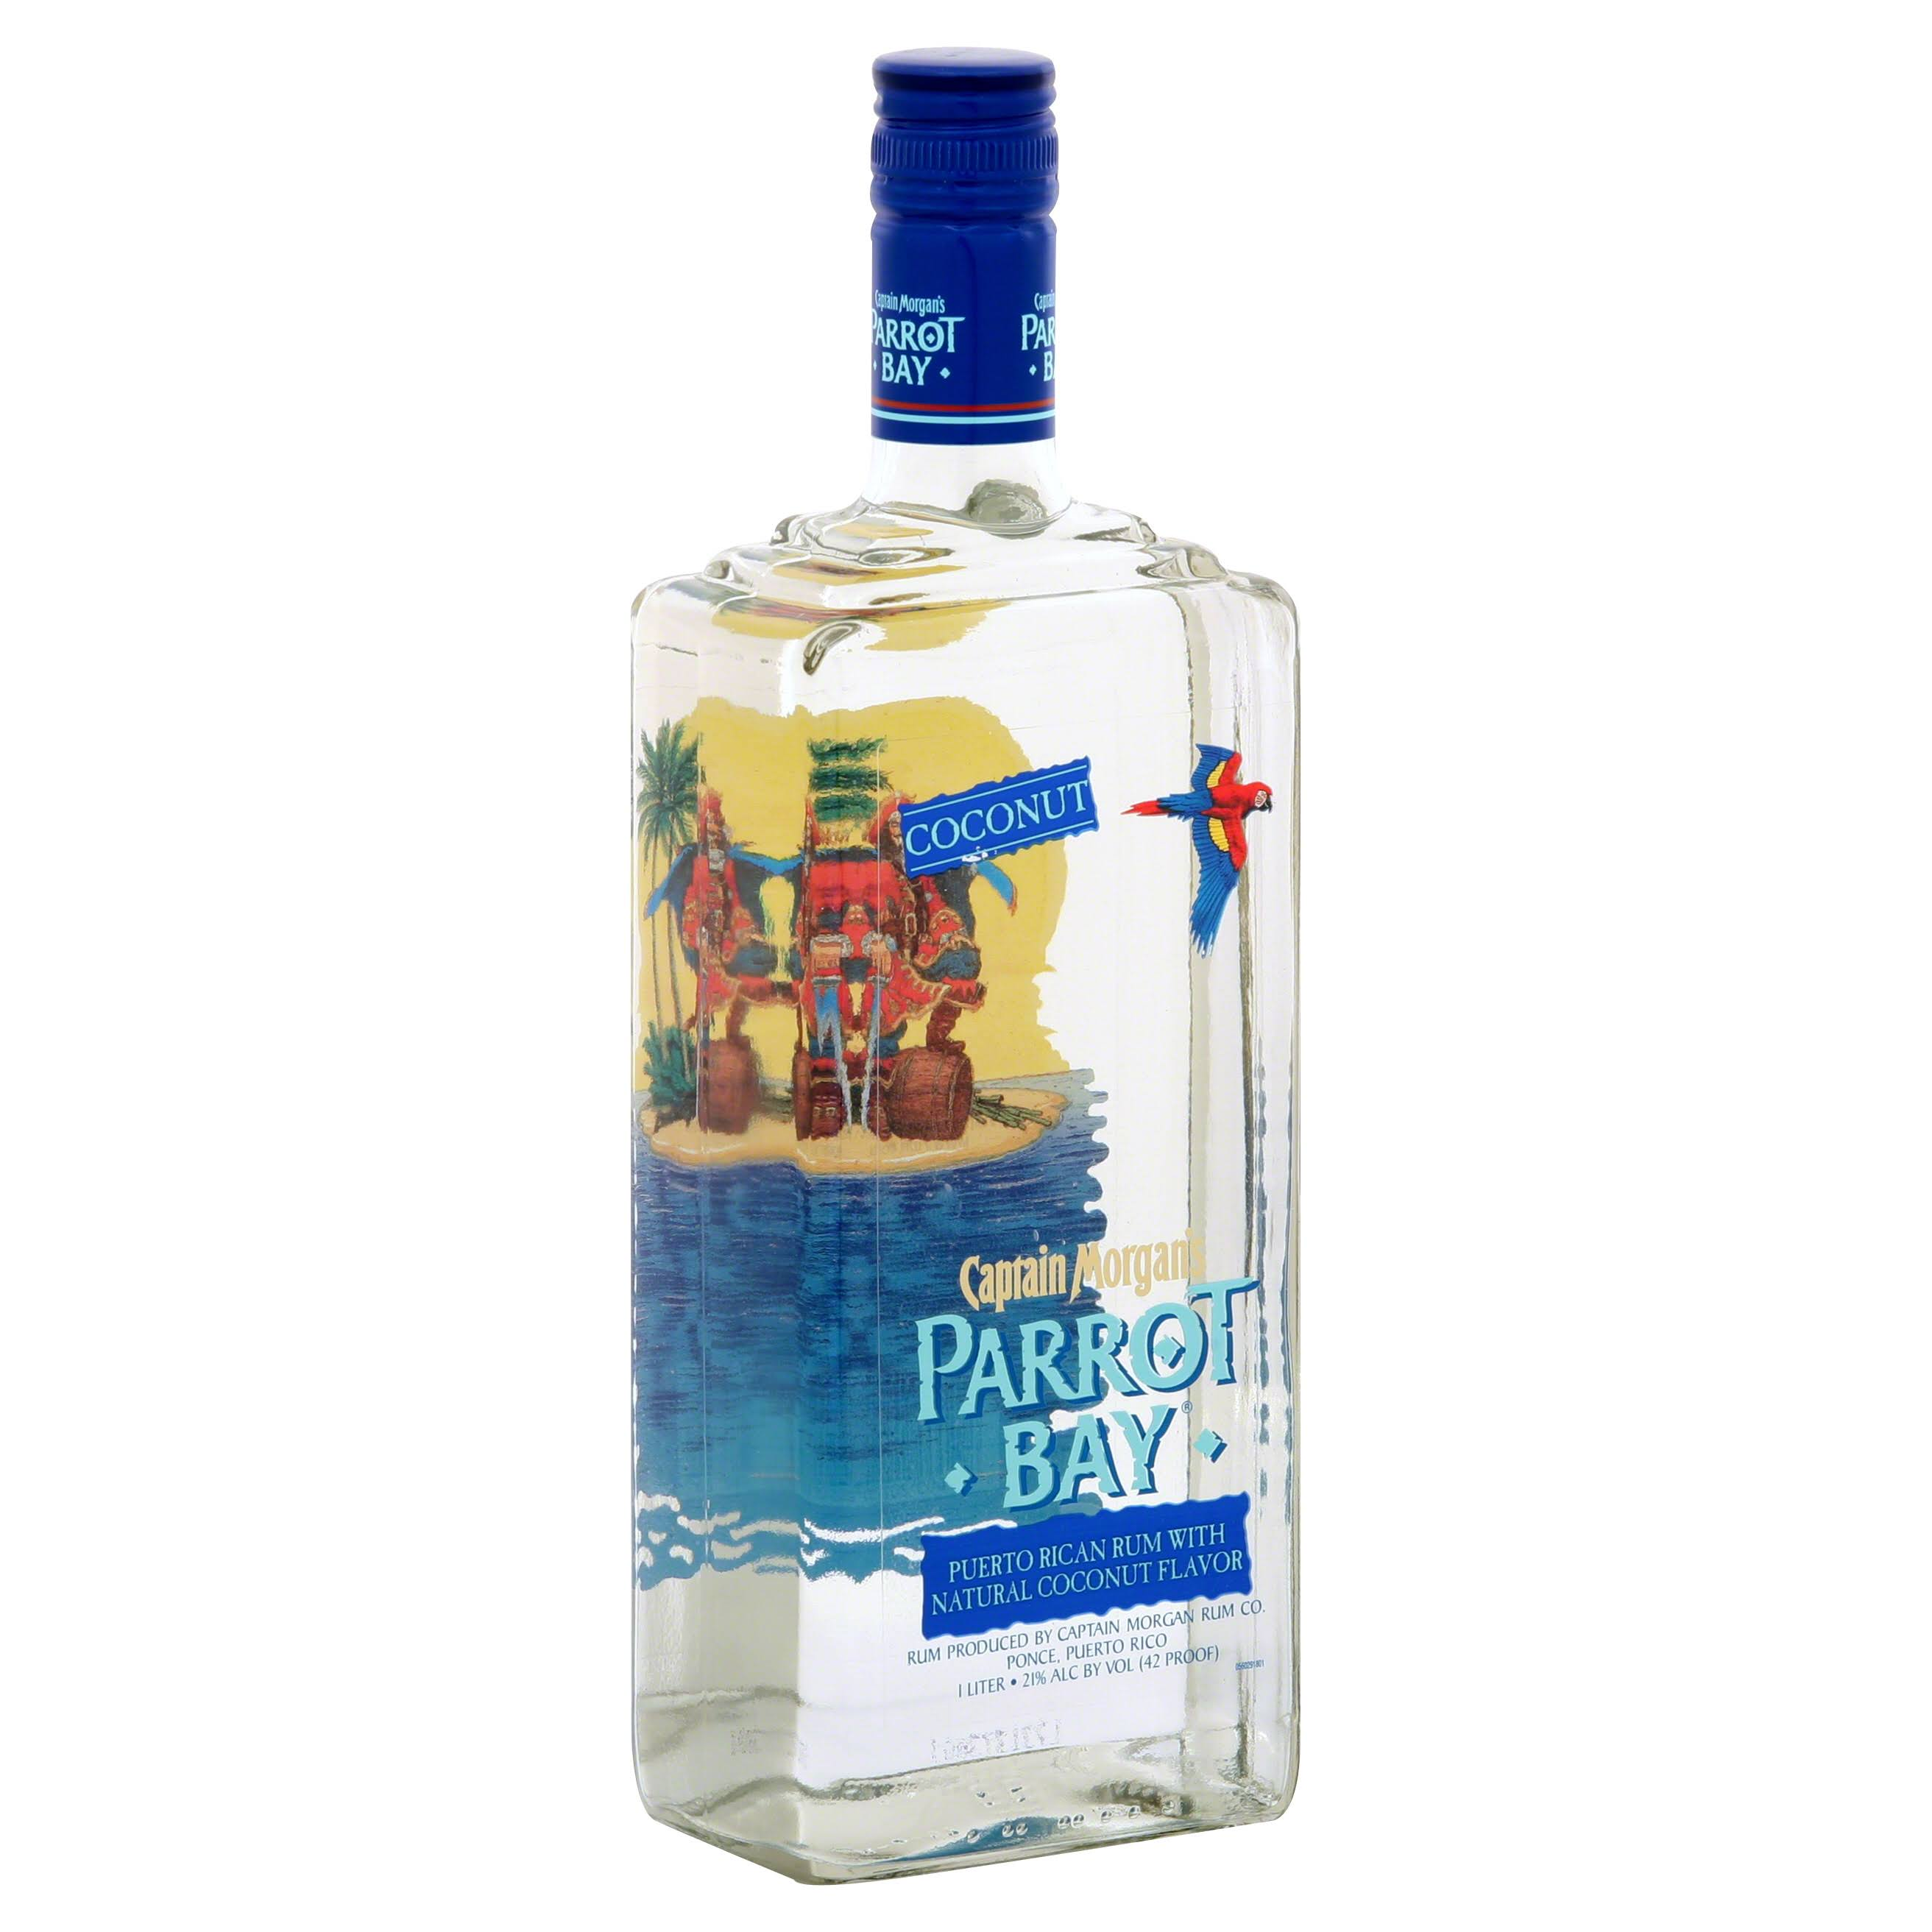 Captain Morgan's Parrot Bay Puerto Rican Rum - Coconut